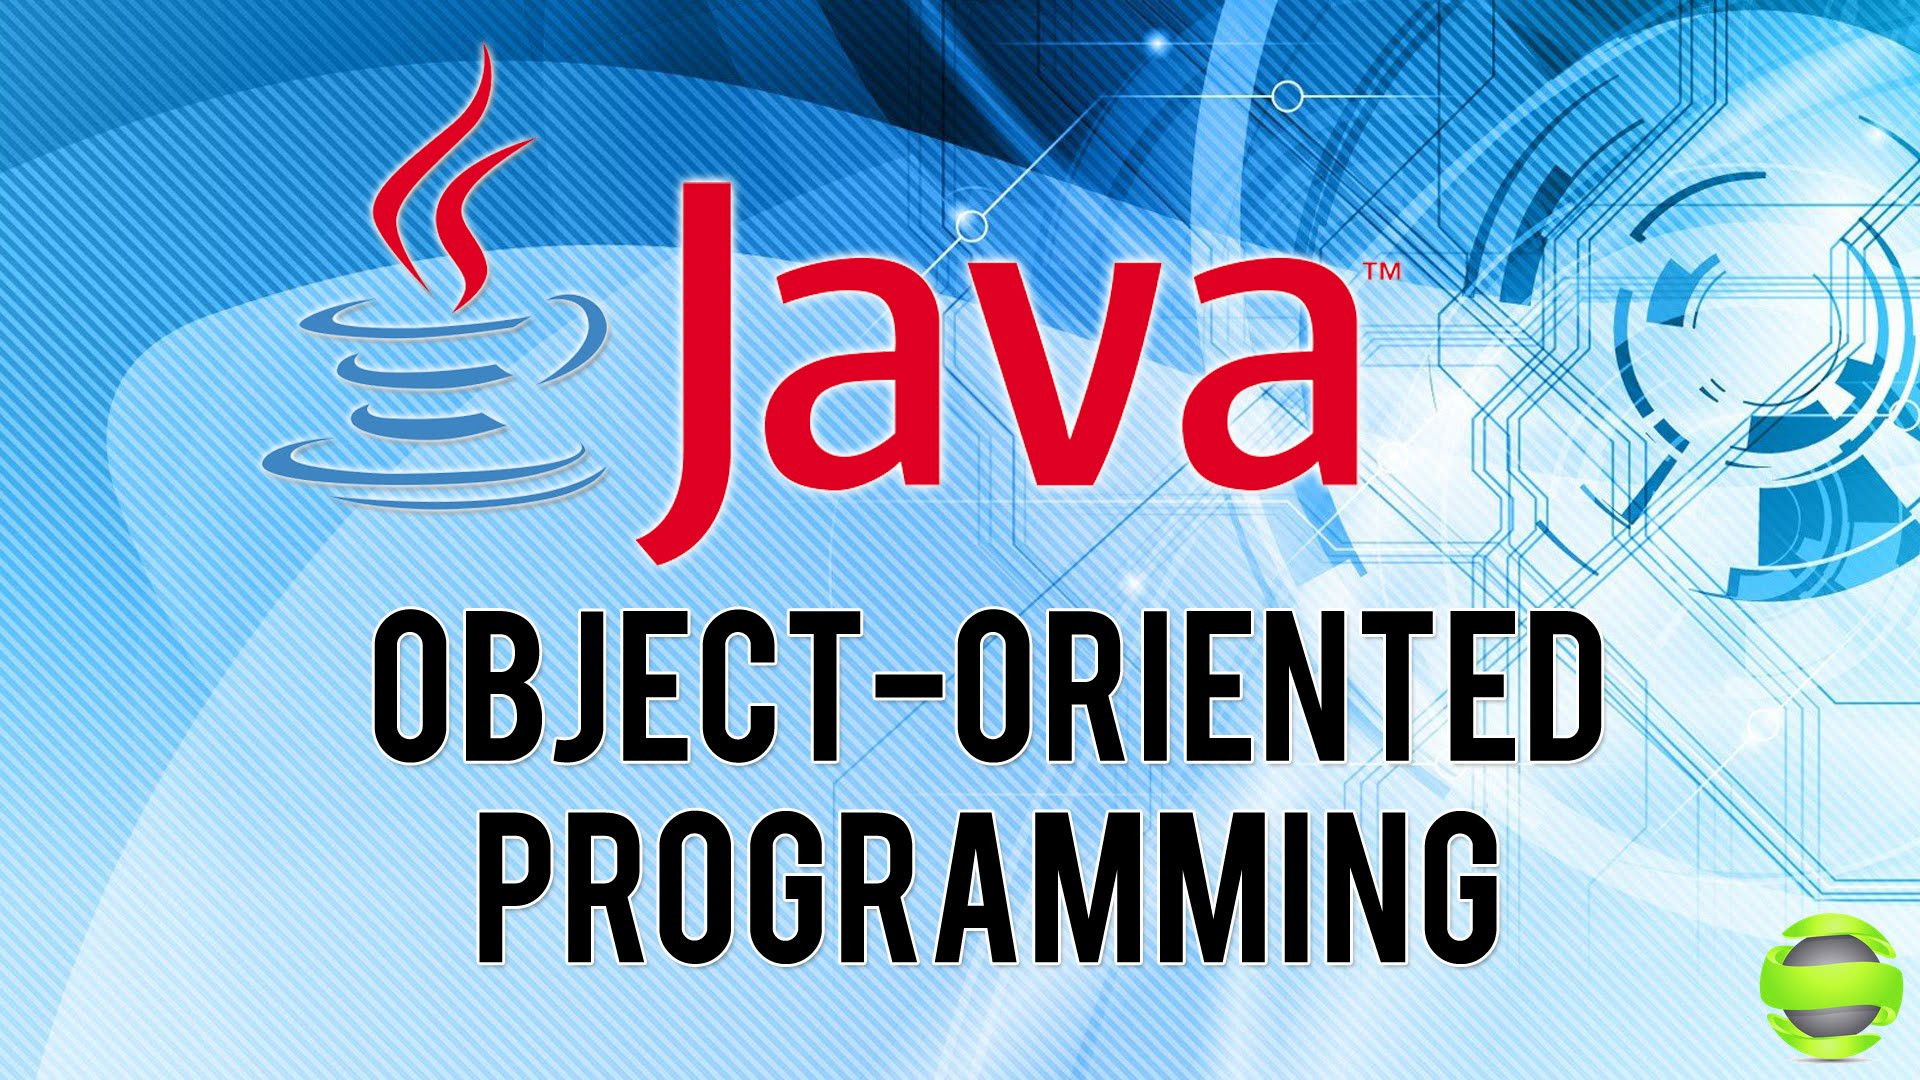 Java Training Course  Classroom Training  Java Training. Individual Health Insurance In New York. Custom Suits New York City Reiki Weight Loss. Beauty Schools In Melbourne Stock Quotes Ge. Weight Loss Statistics Museum Hotel Amsterdam. Plumbers In Temecula Ca Belly Exercise Machine. Car Rental In Australia Sydney. Marketing Advertising Companies. Telephony Denial Of Service Attack